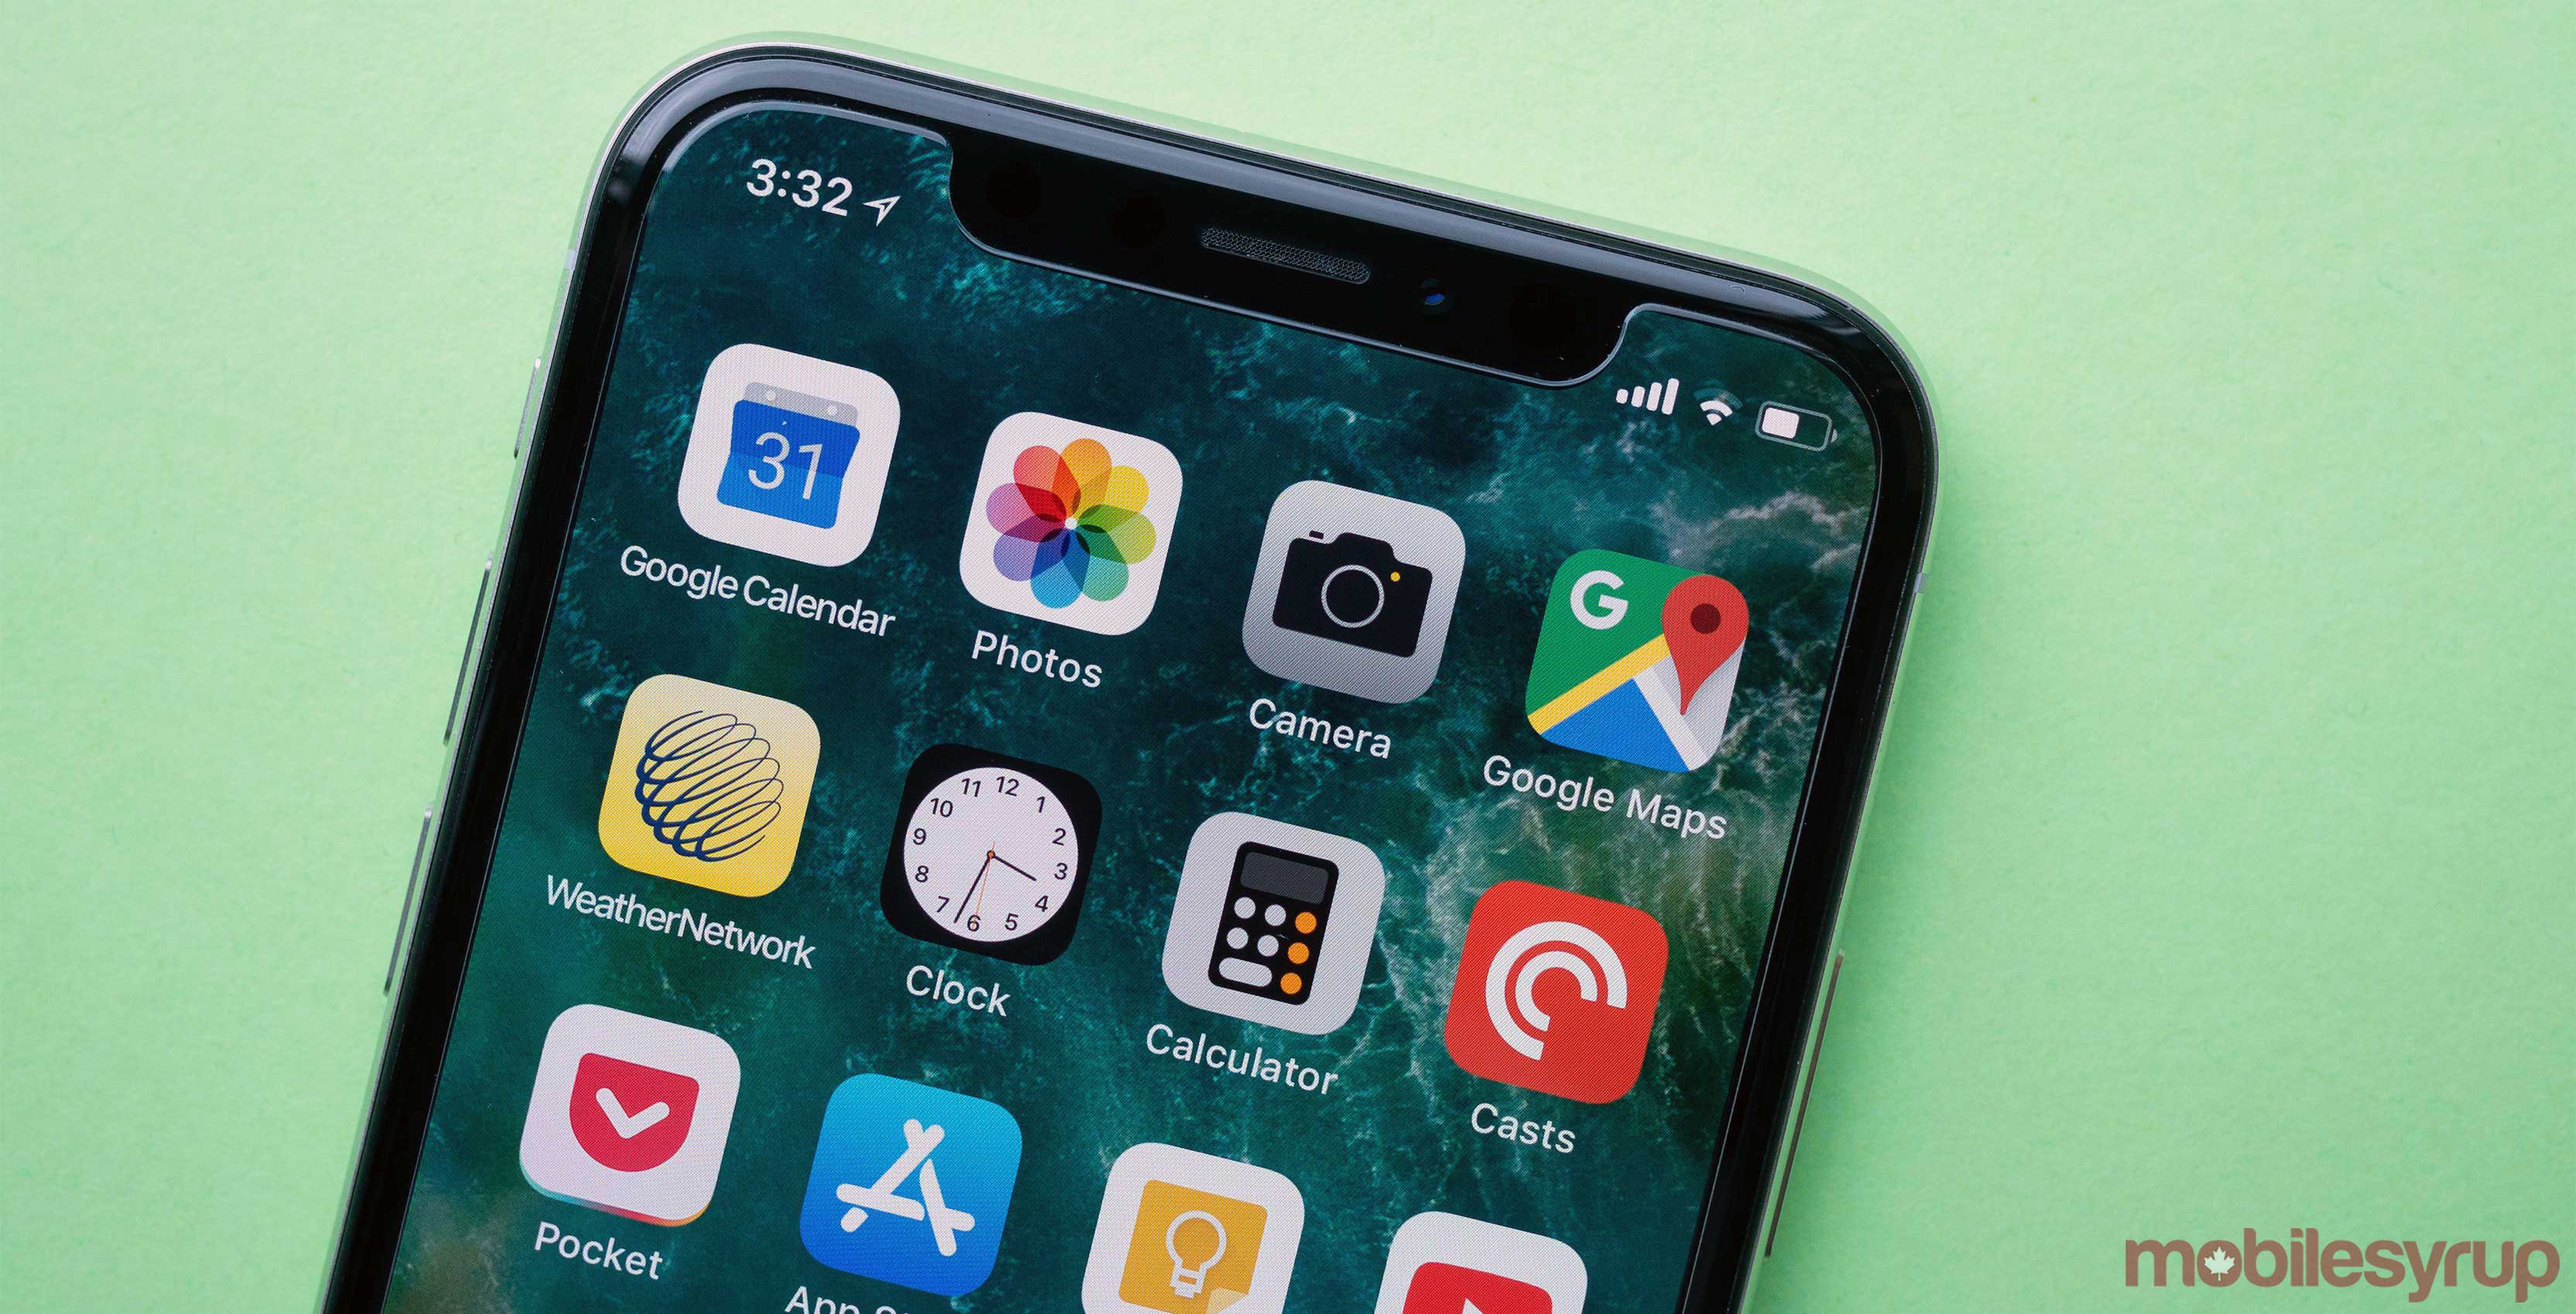 iOS 12: Apple may introduce new NFC features for iPhones